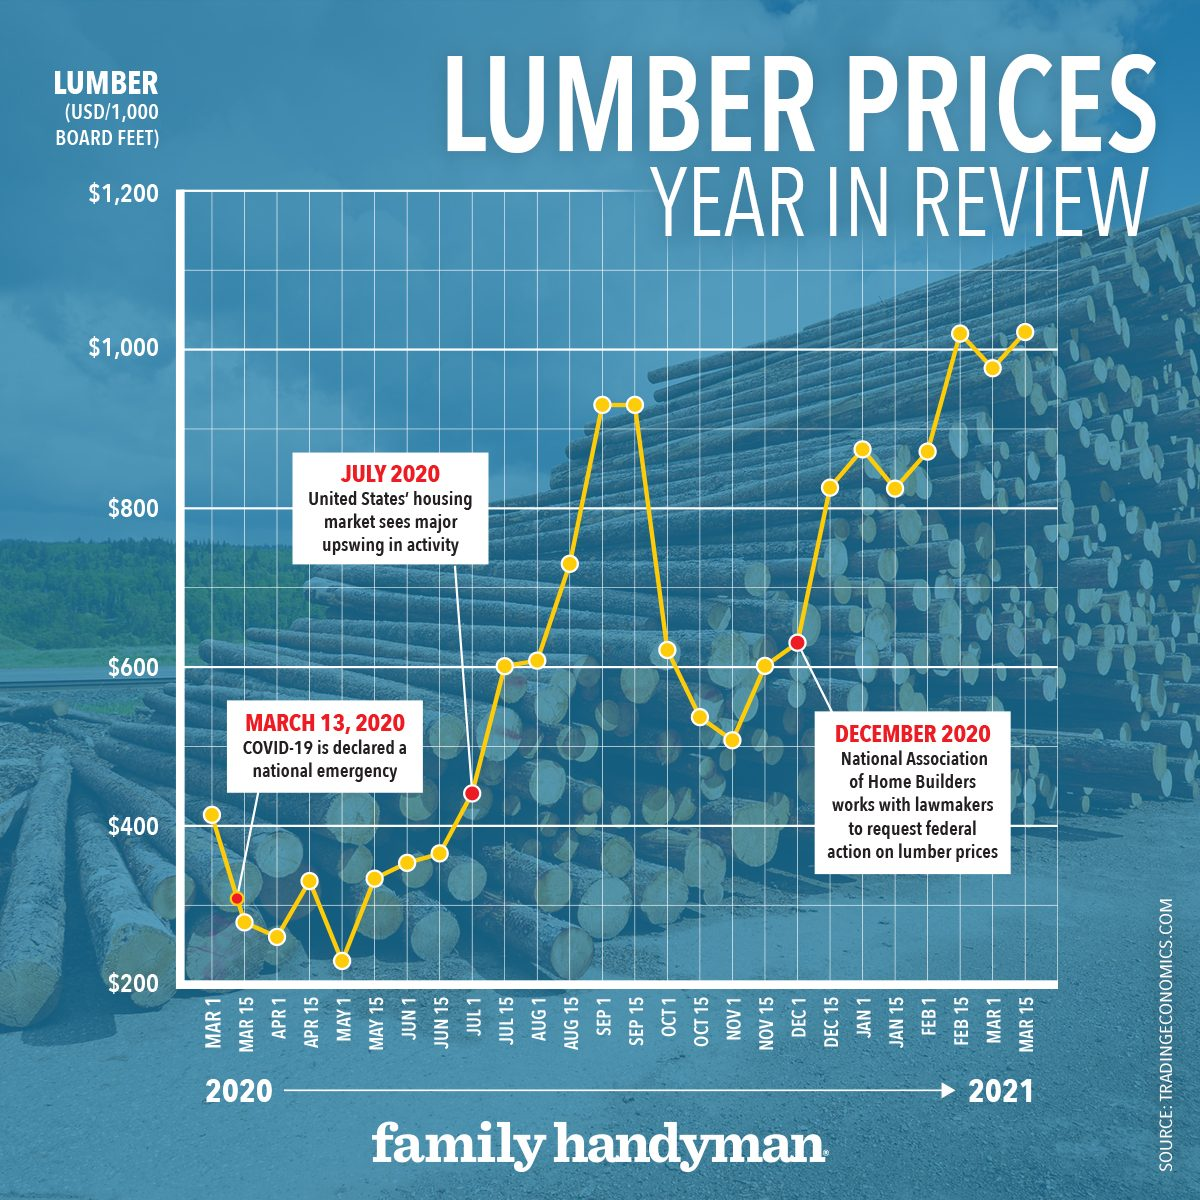 Have Lumber Prices Bottomed Out?